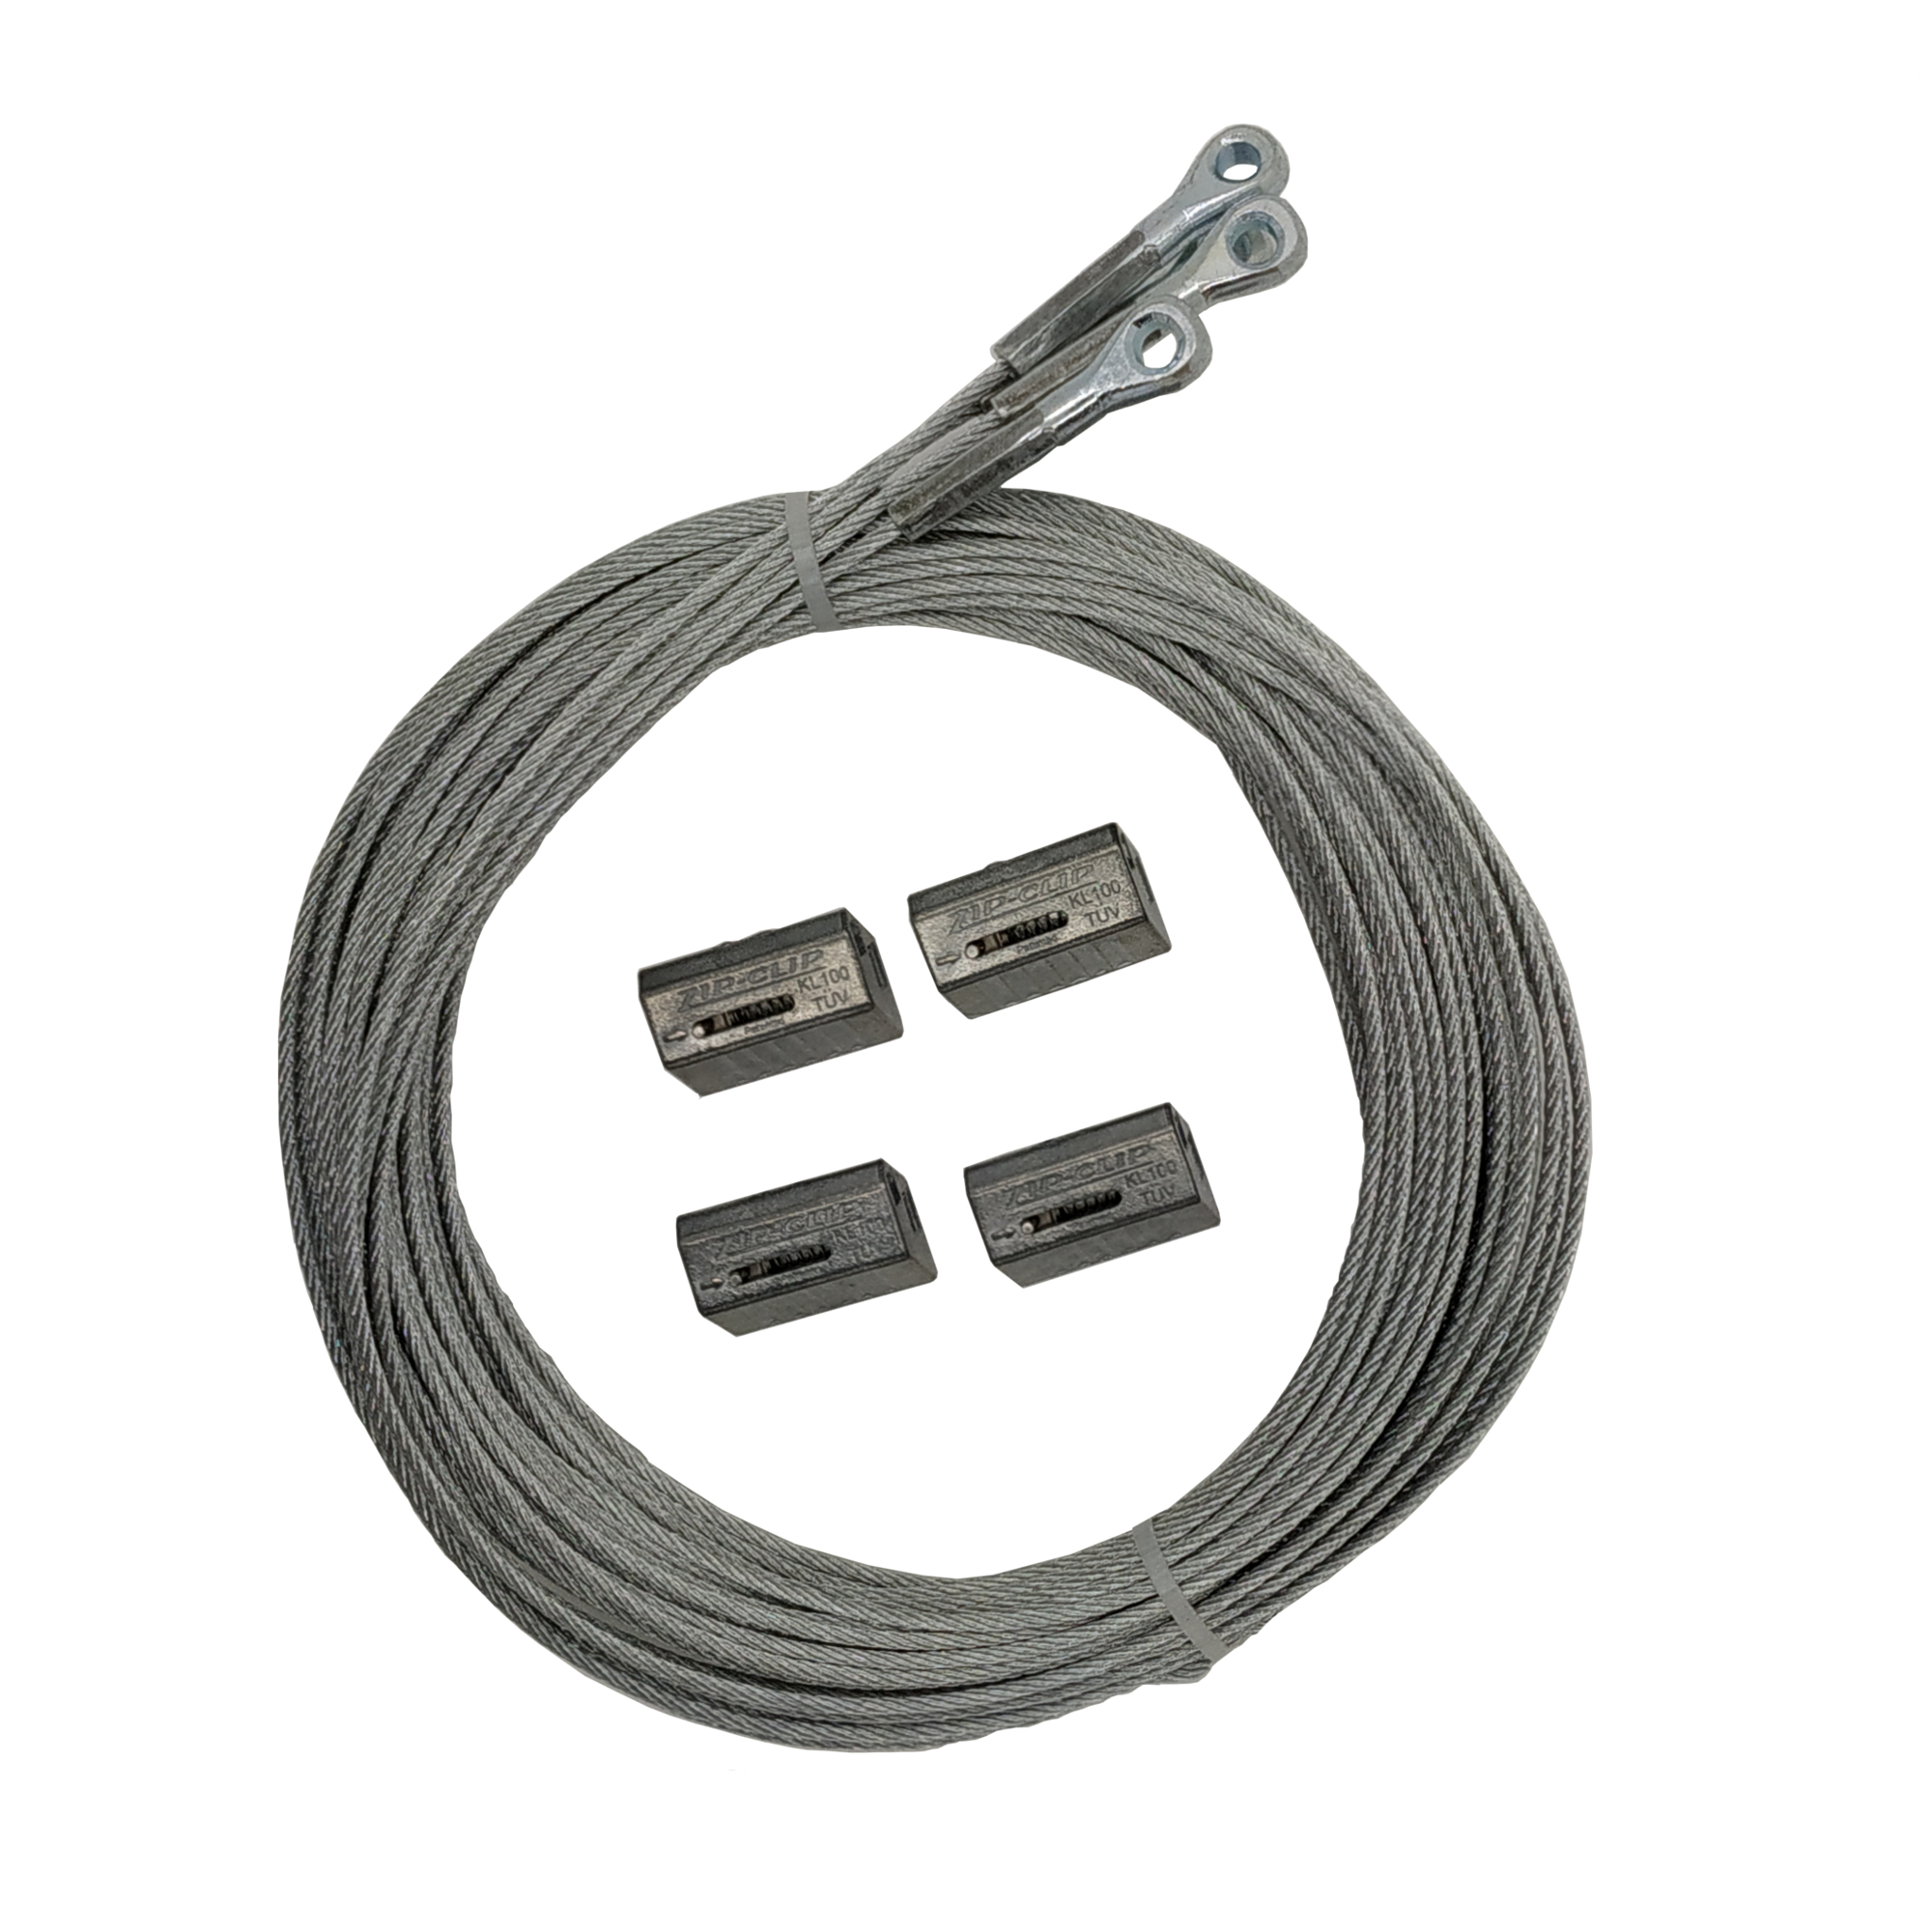 Zip-Lock ZLS 50 kgs WLL Eye Type Cables Pack of 4 pcs